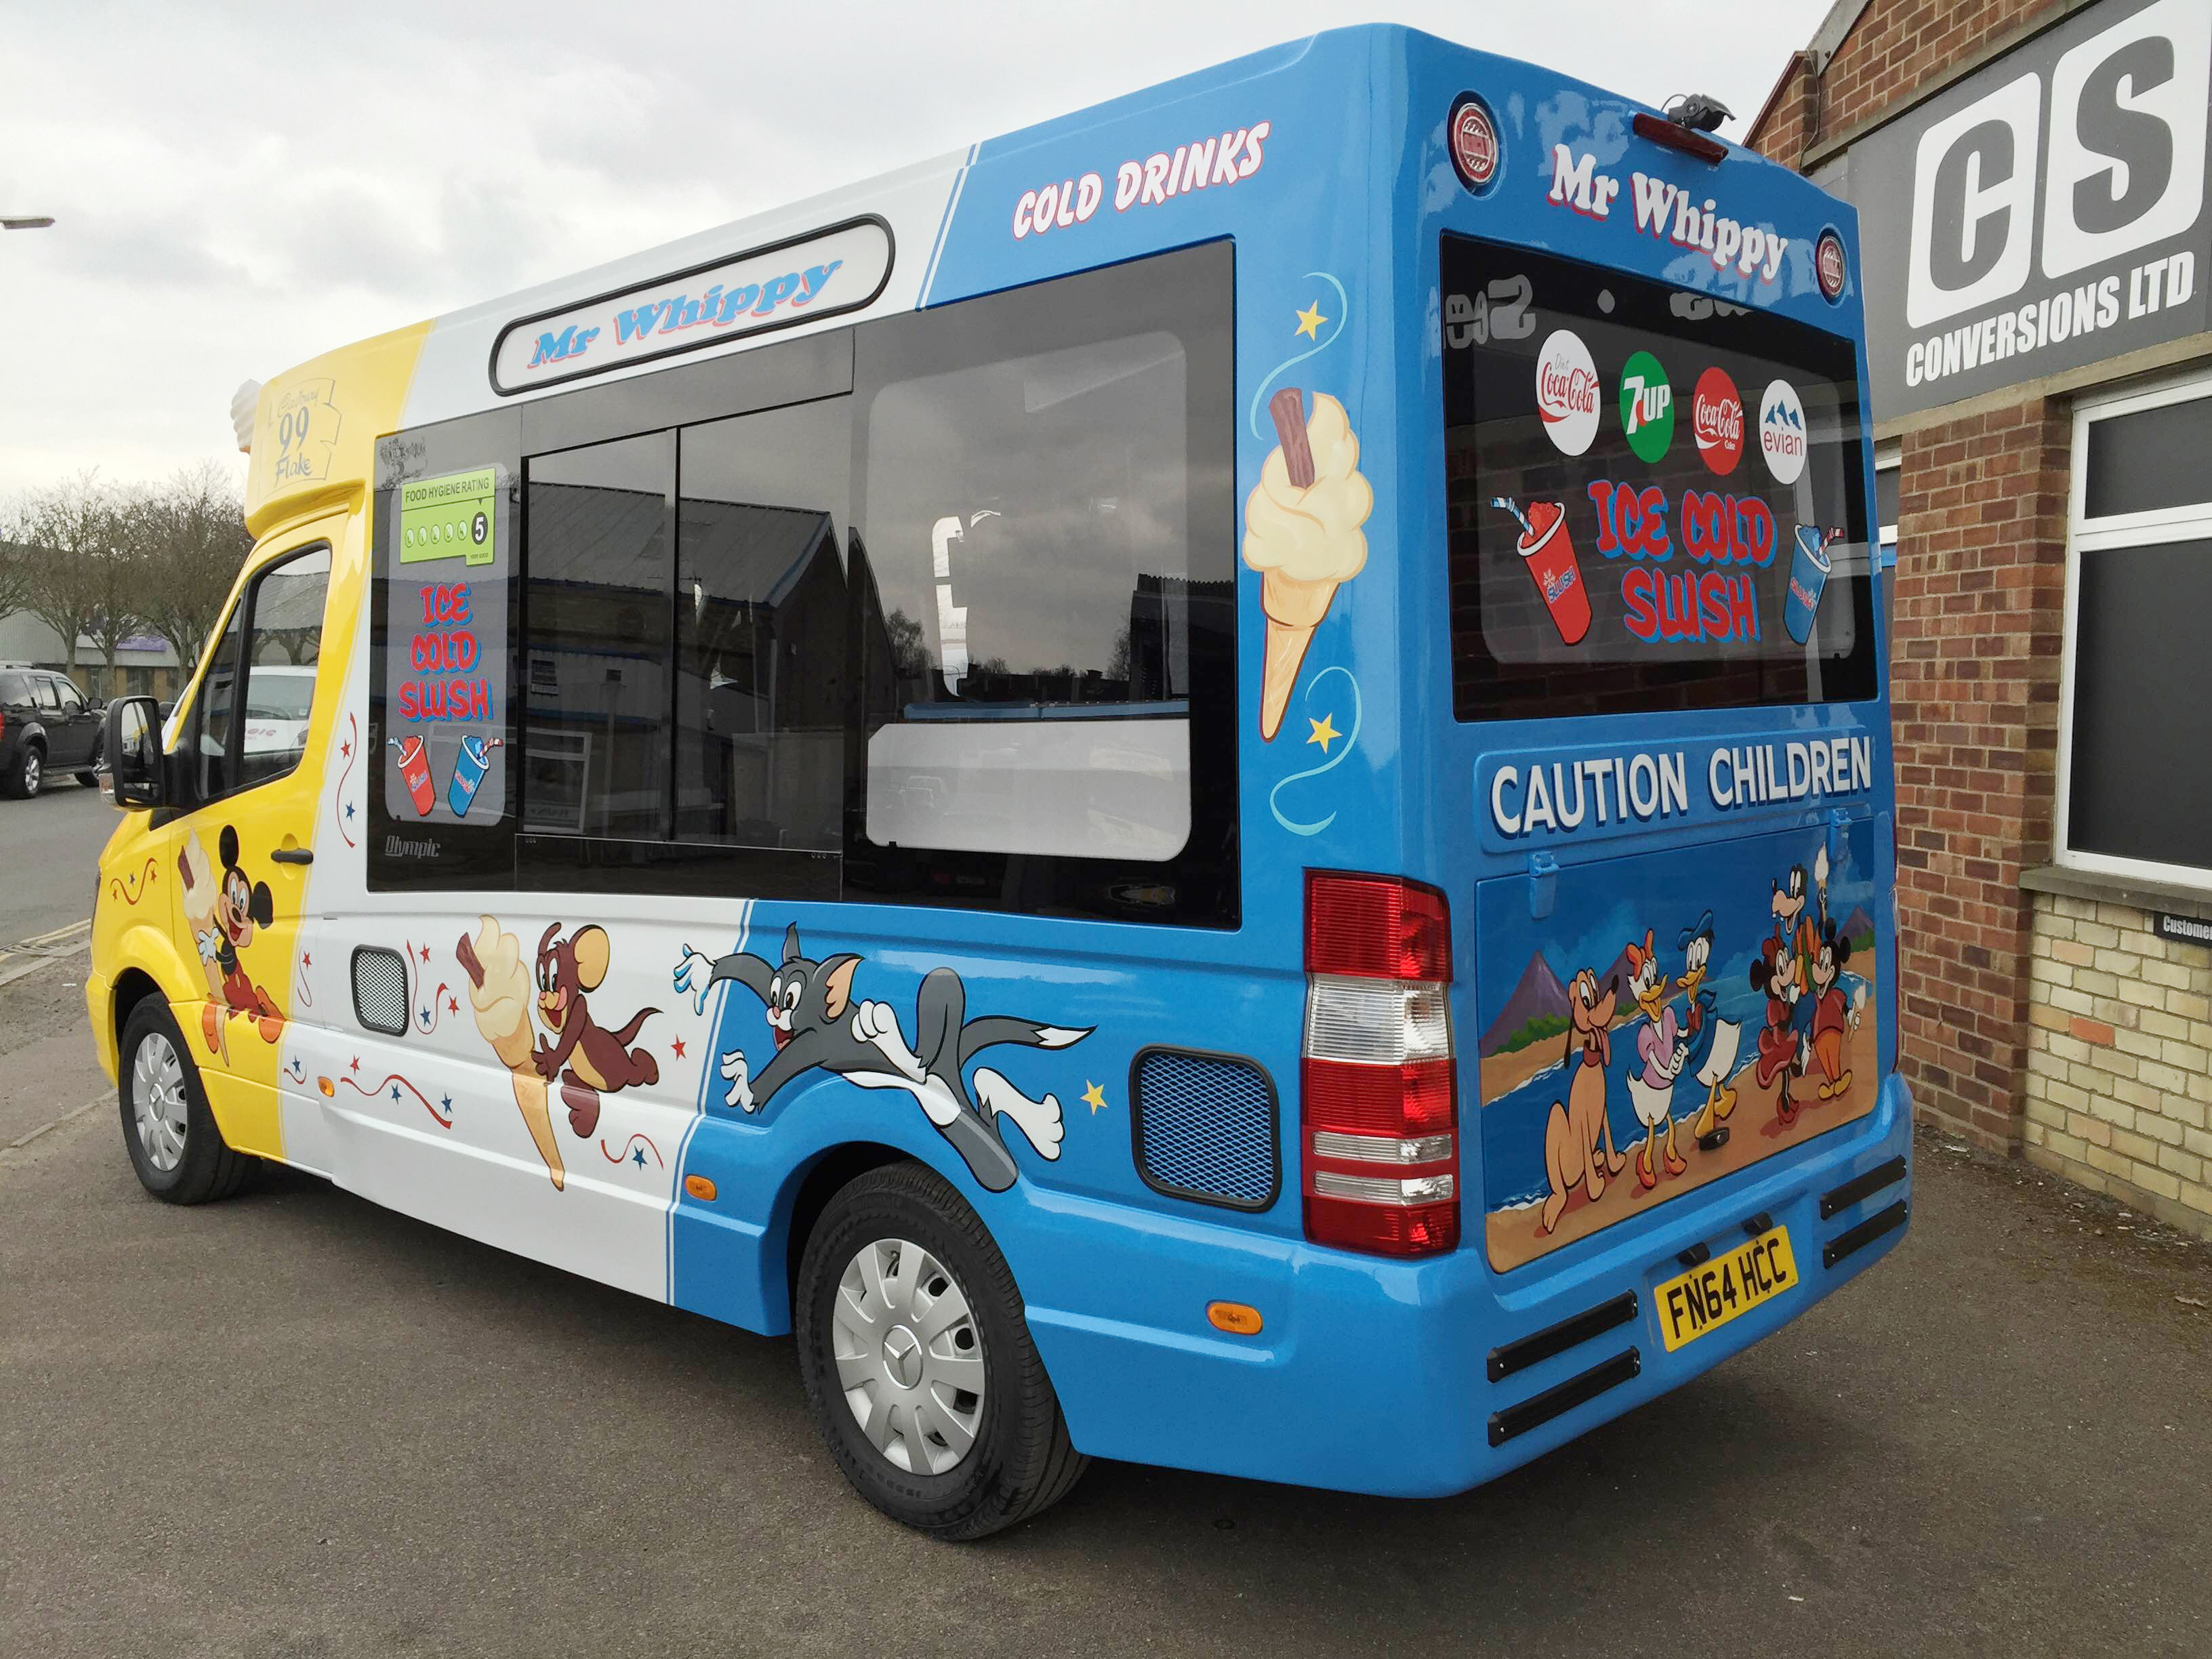 Minibus For Sale >> C S Conversions Limited, specialist ice cream van builders. With the experience and skills ...